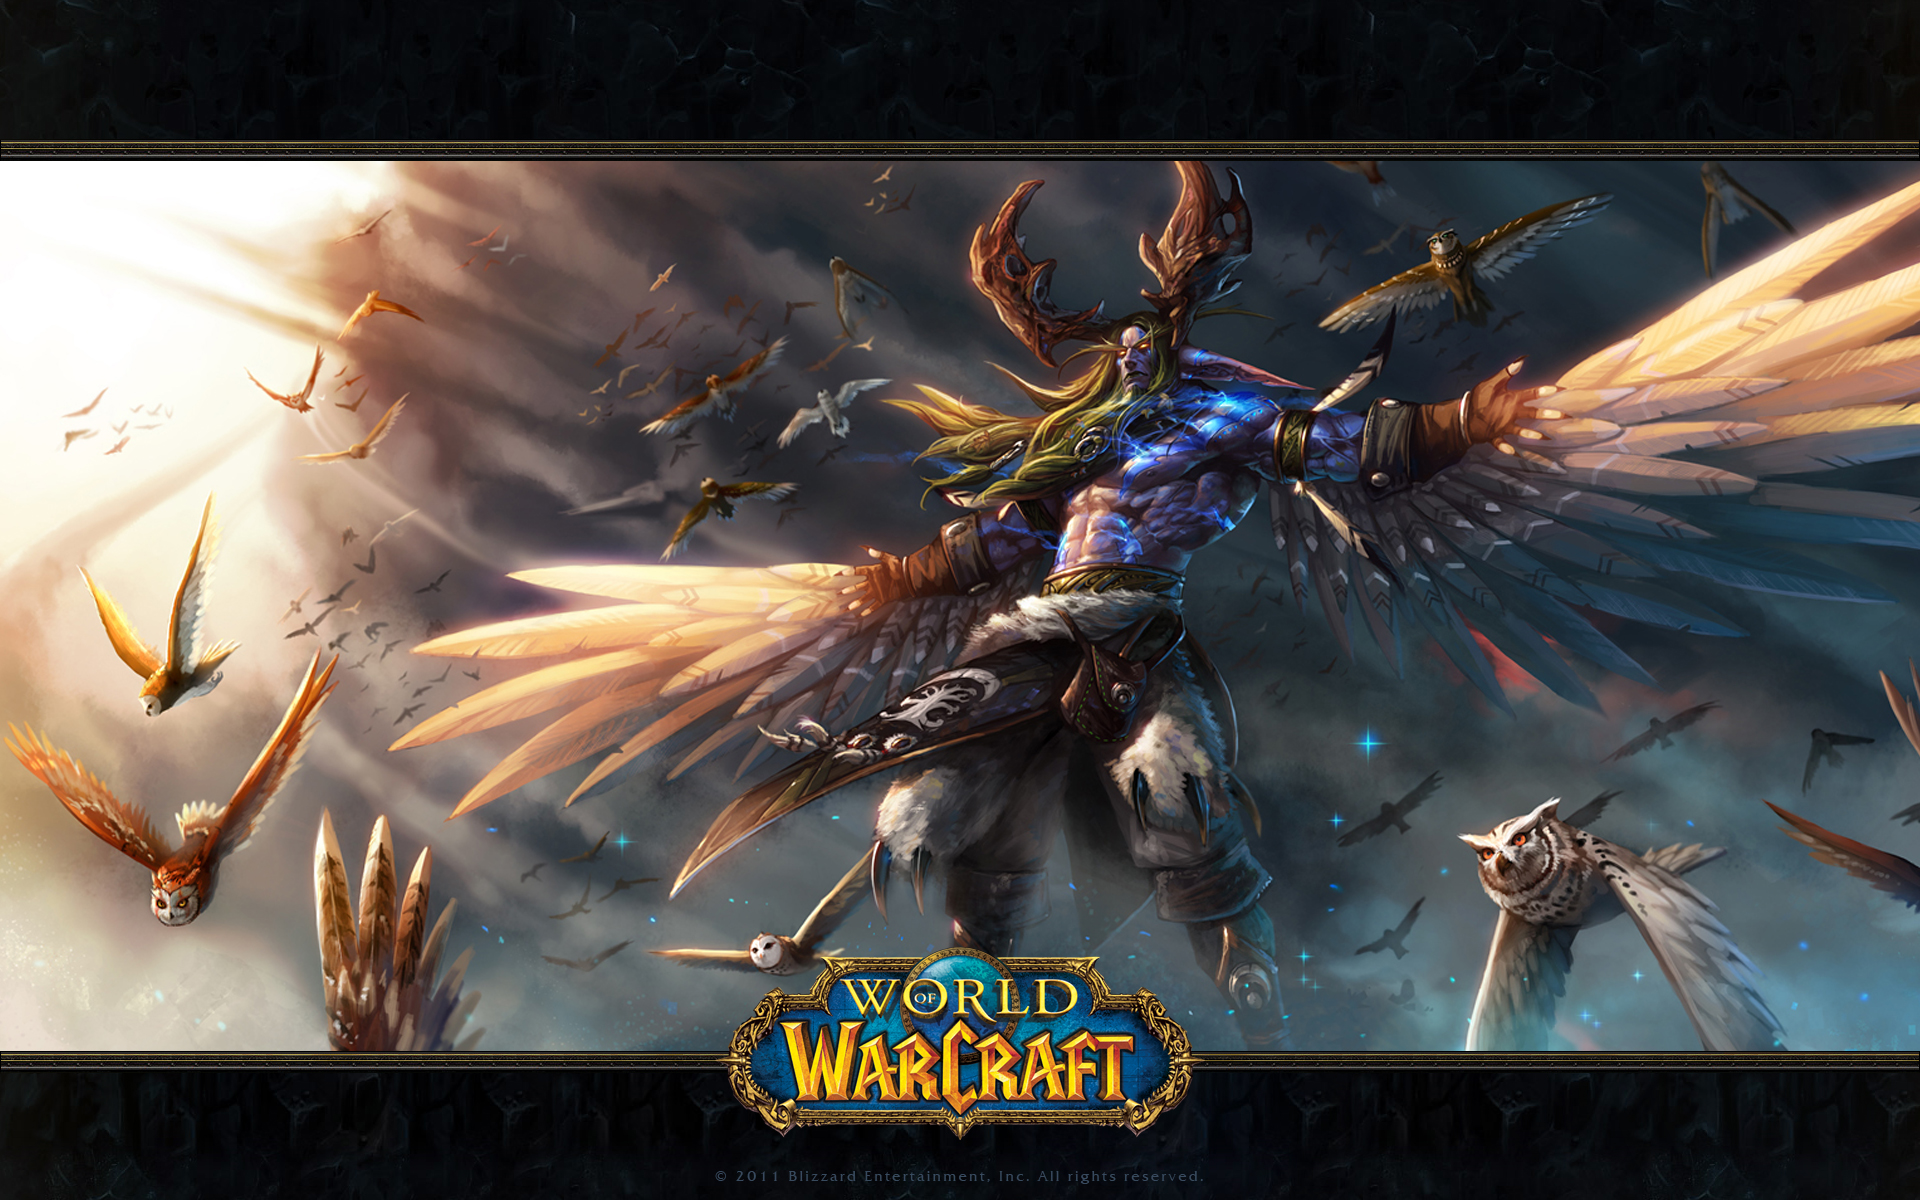 """World of Warcraft"" Suffers Huge Player Loss - ....still #1 Subscriber-Based MMO In The World"